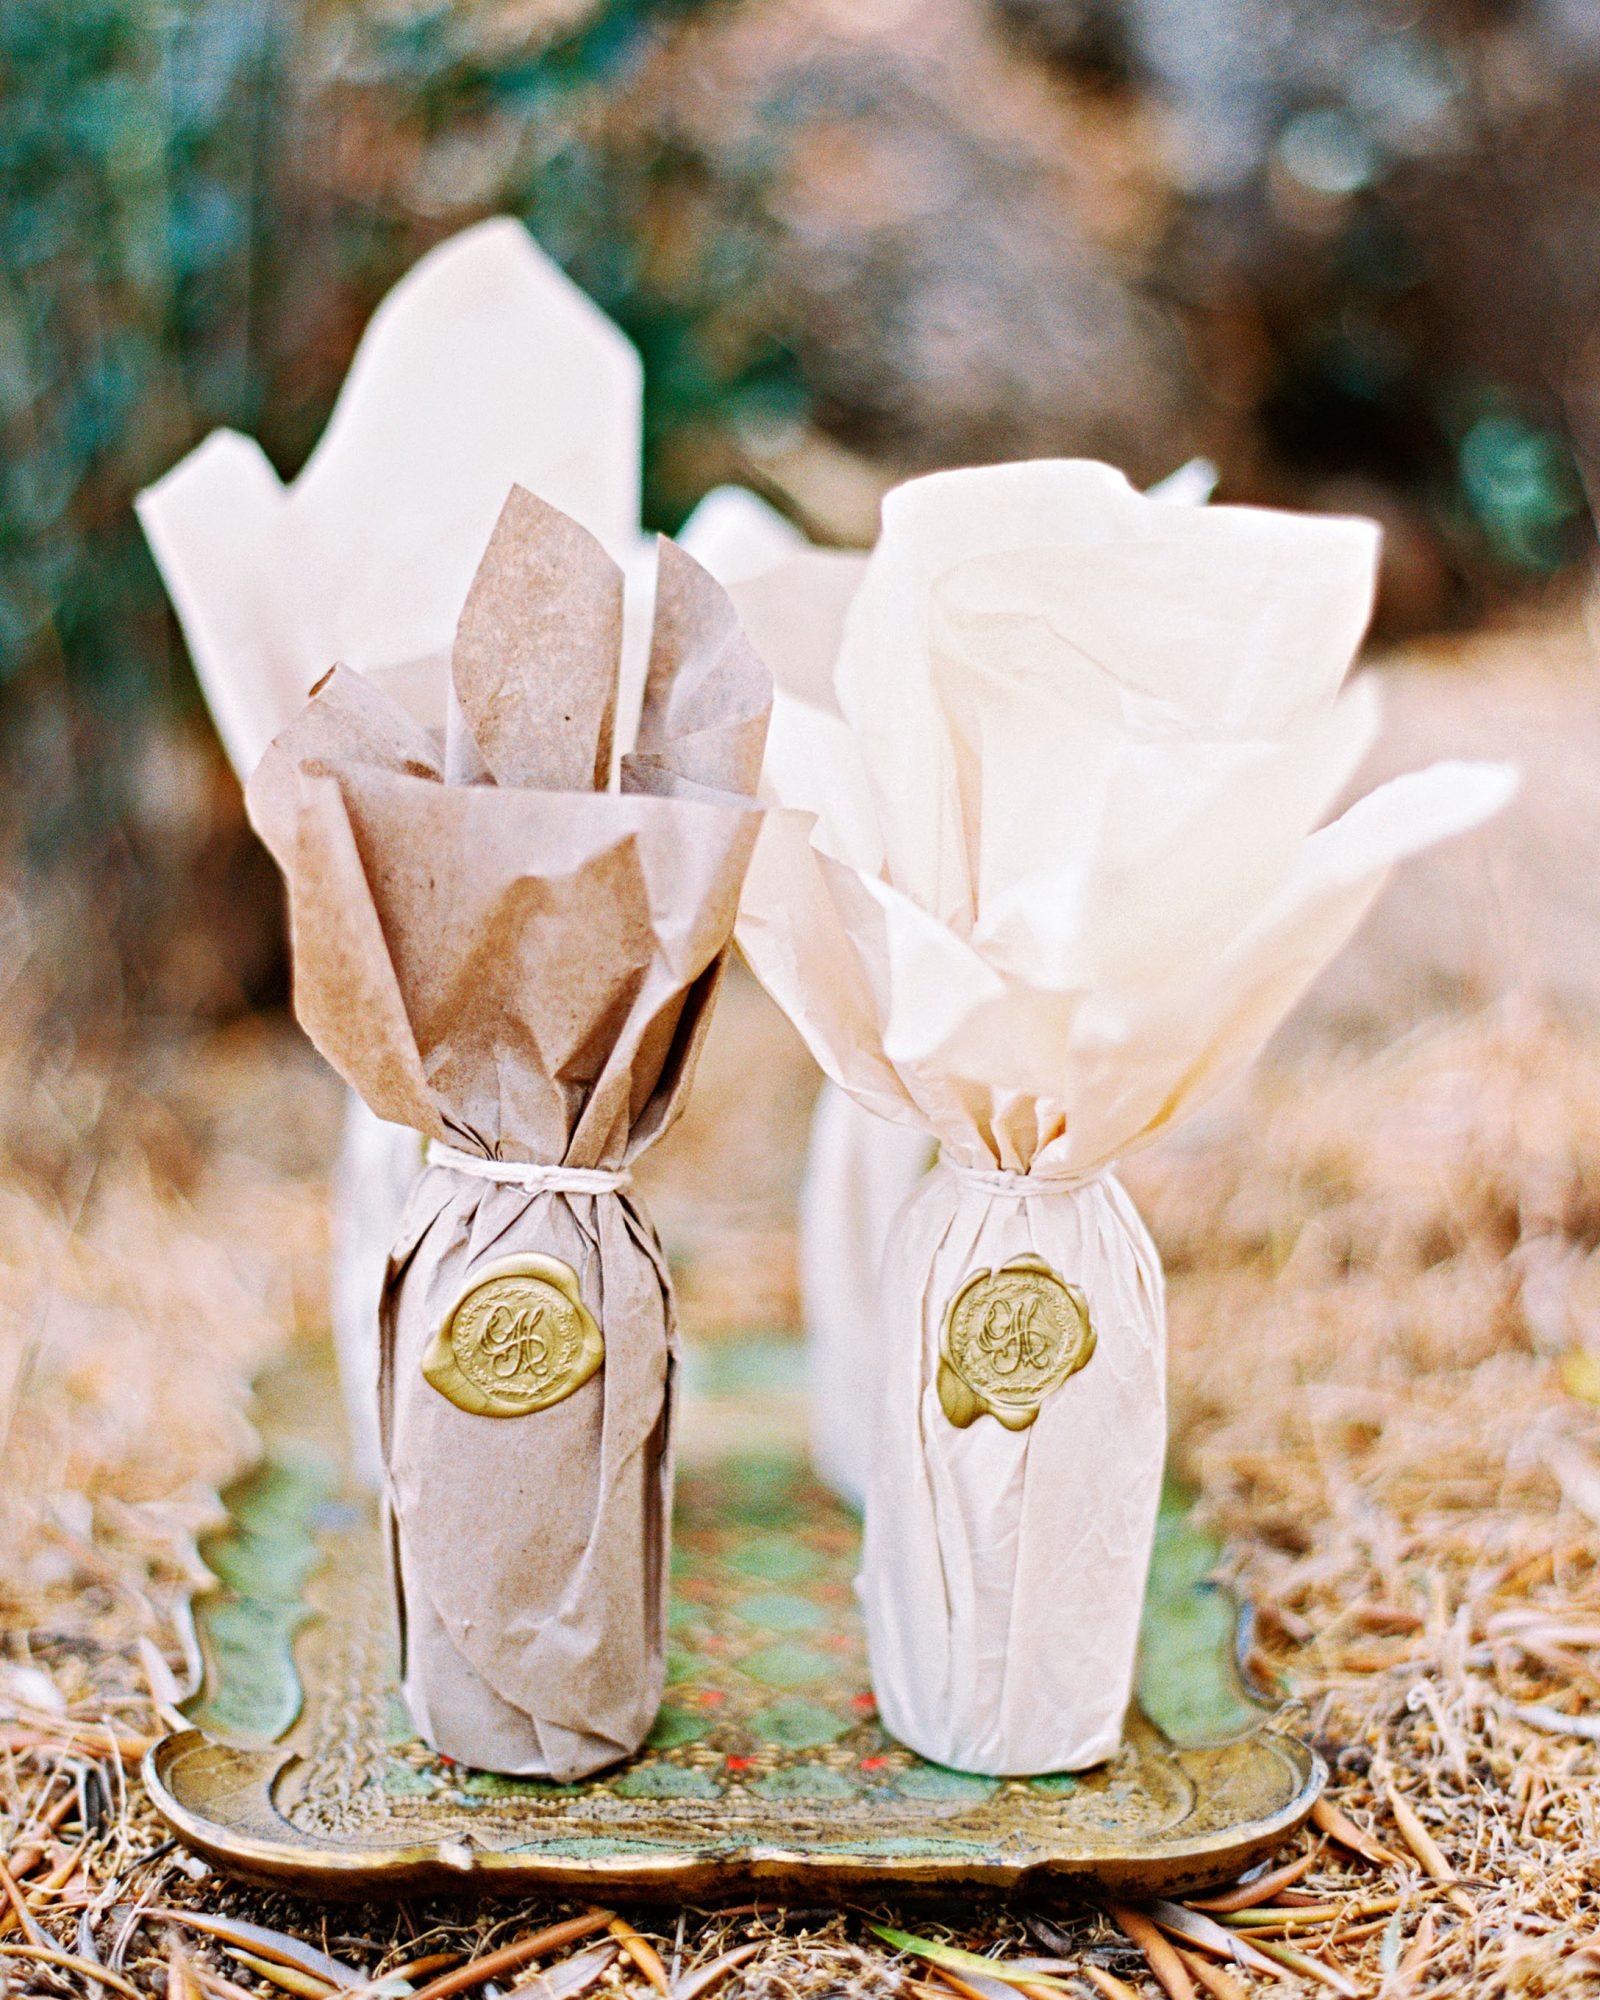 Favors included bottles of local olive oil, wrapped with the couple's wax seal.